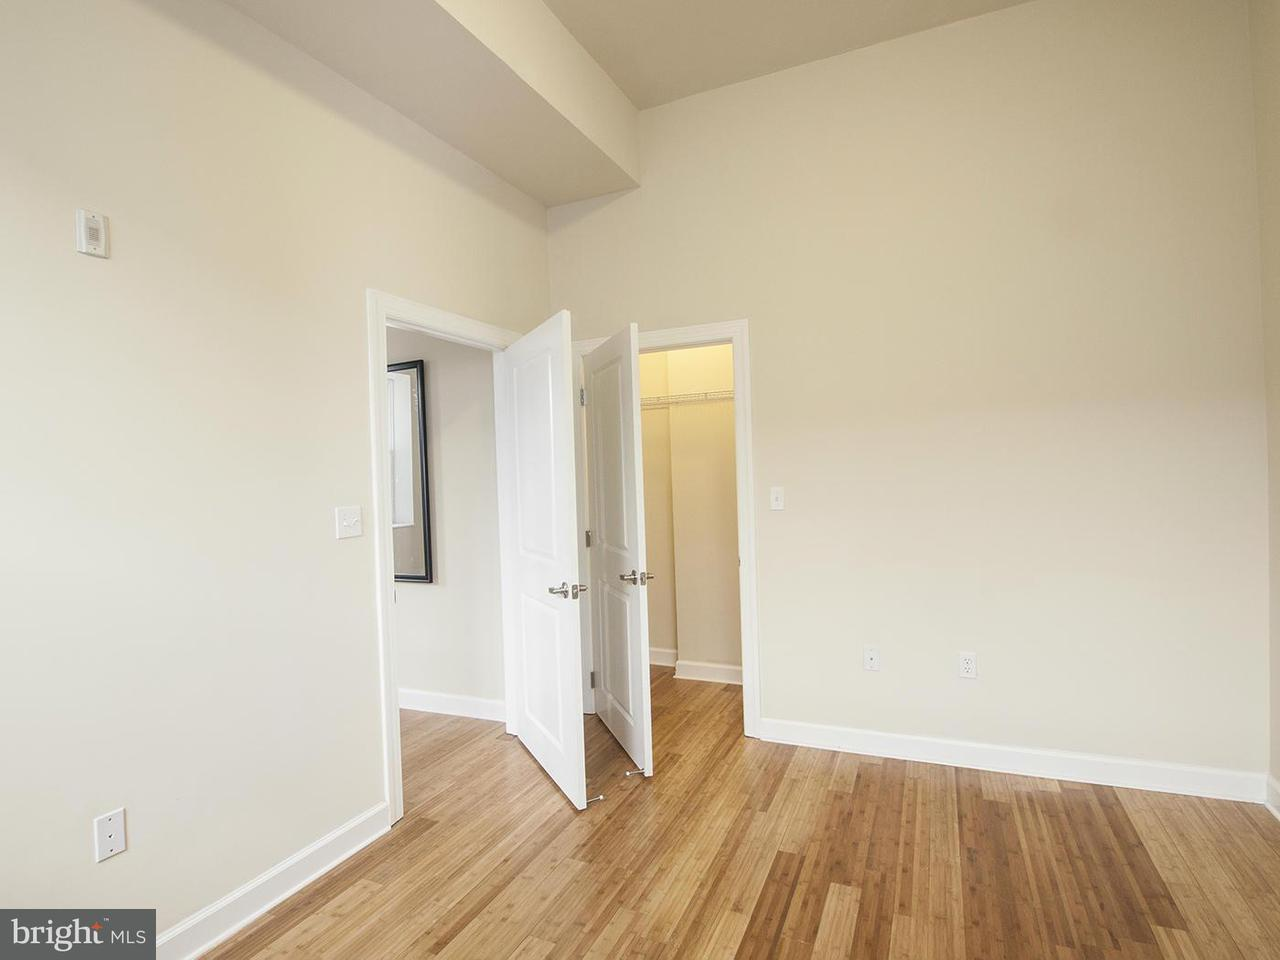 Other Residential for Rent at 1433 T St NW #103 Washington, District Of Columbia 20009 United States